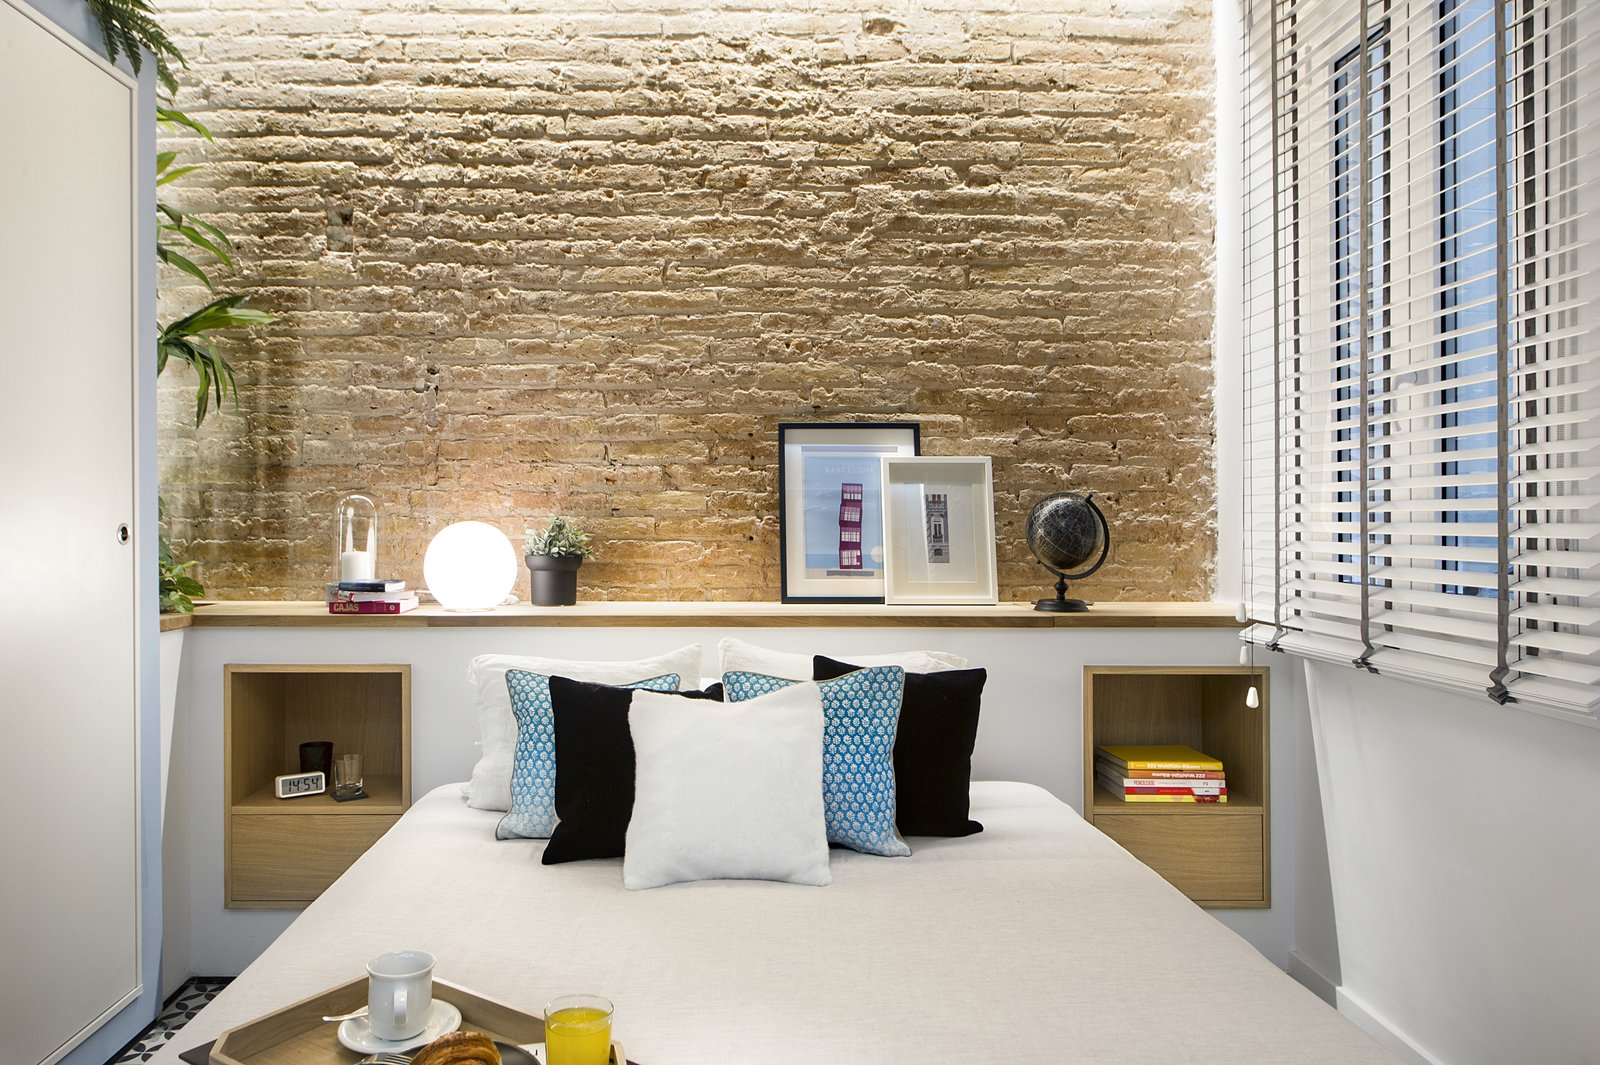 Bedroom, Shelves, Table Lighting, Bed, and Porcelain Tile Floor  Urban Beach Home from A Smart Layout Maximizes Space in This Compact Urban Beach Apartment in Barcelona